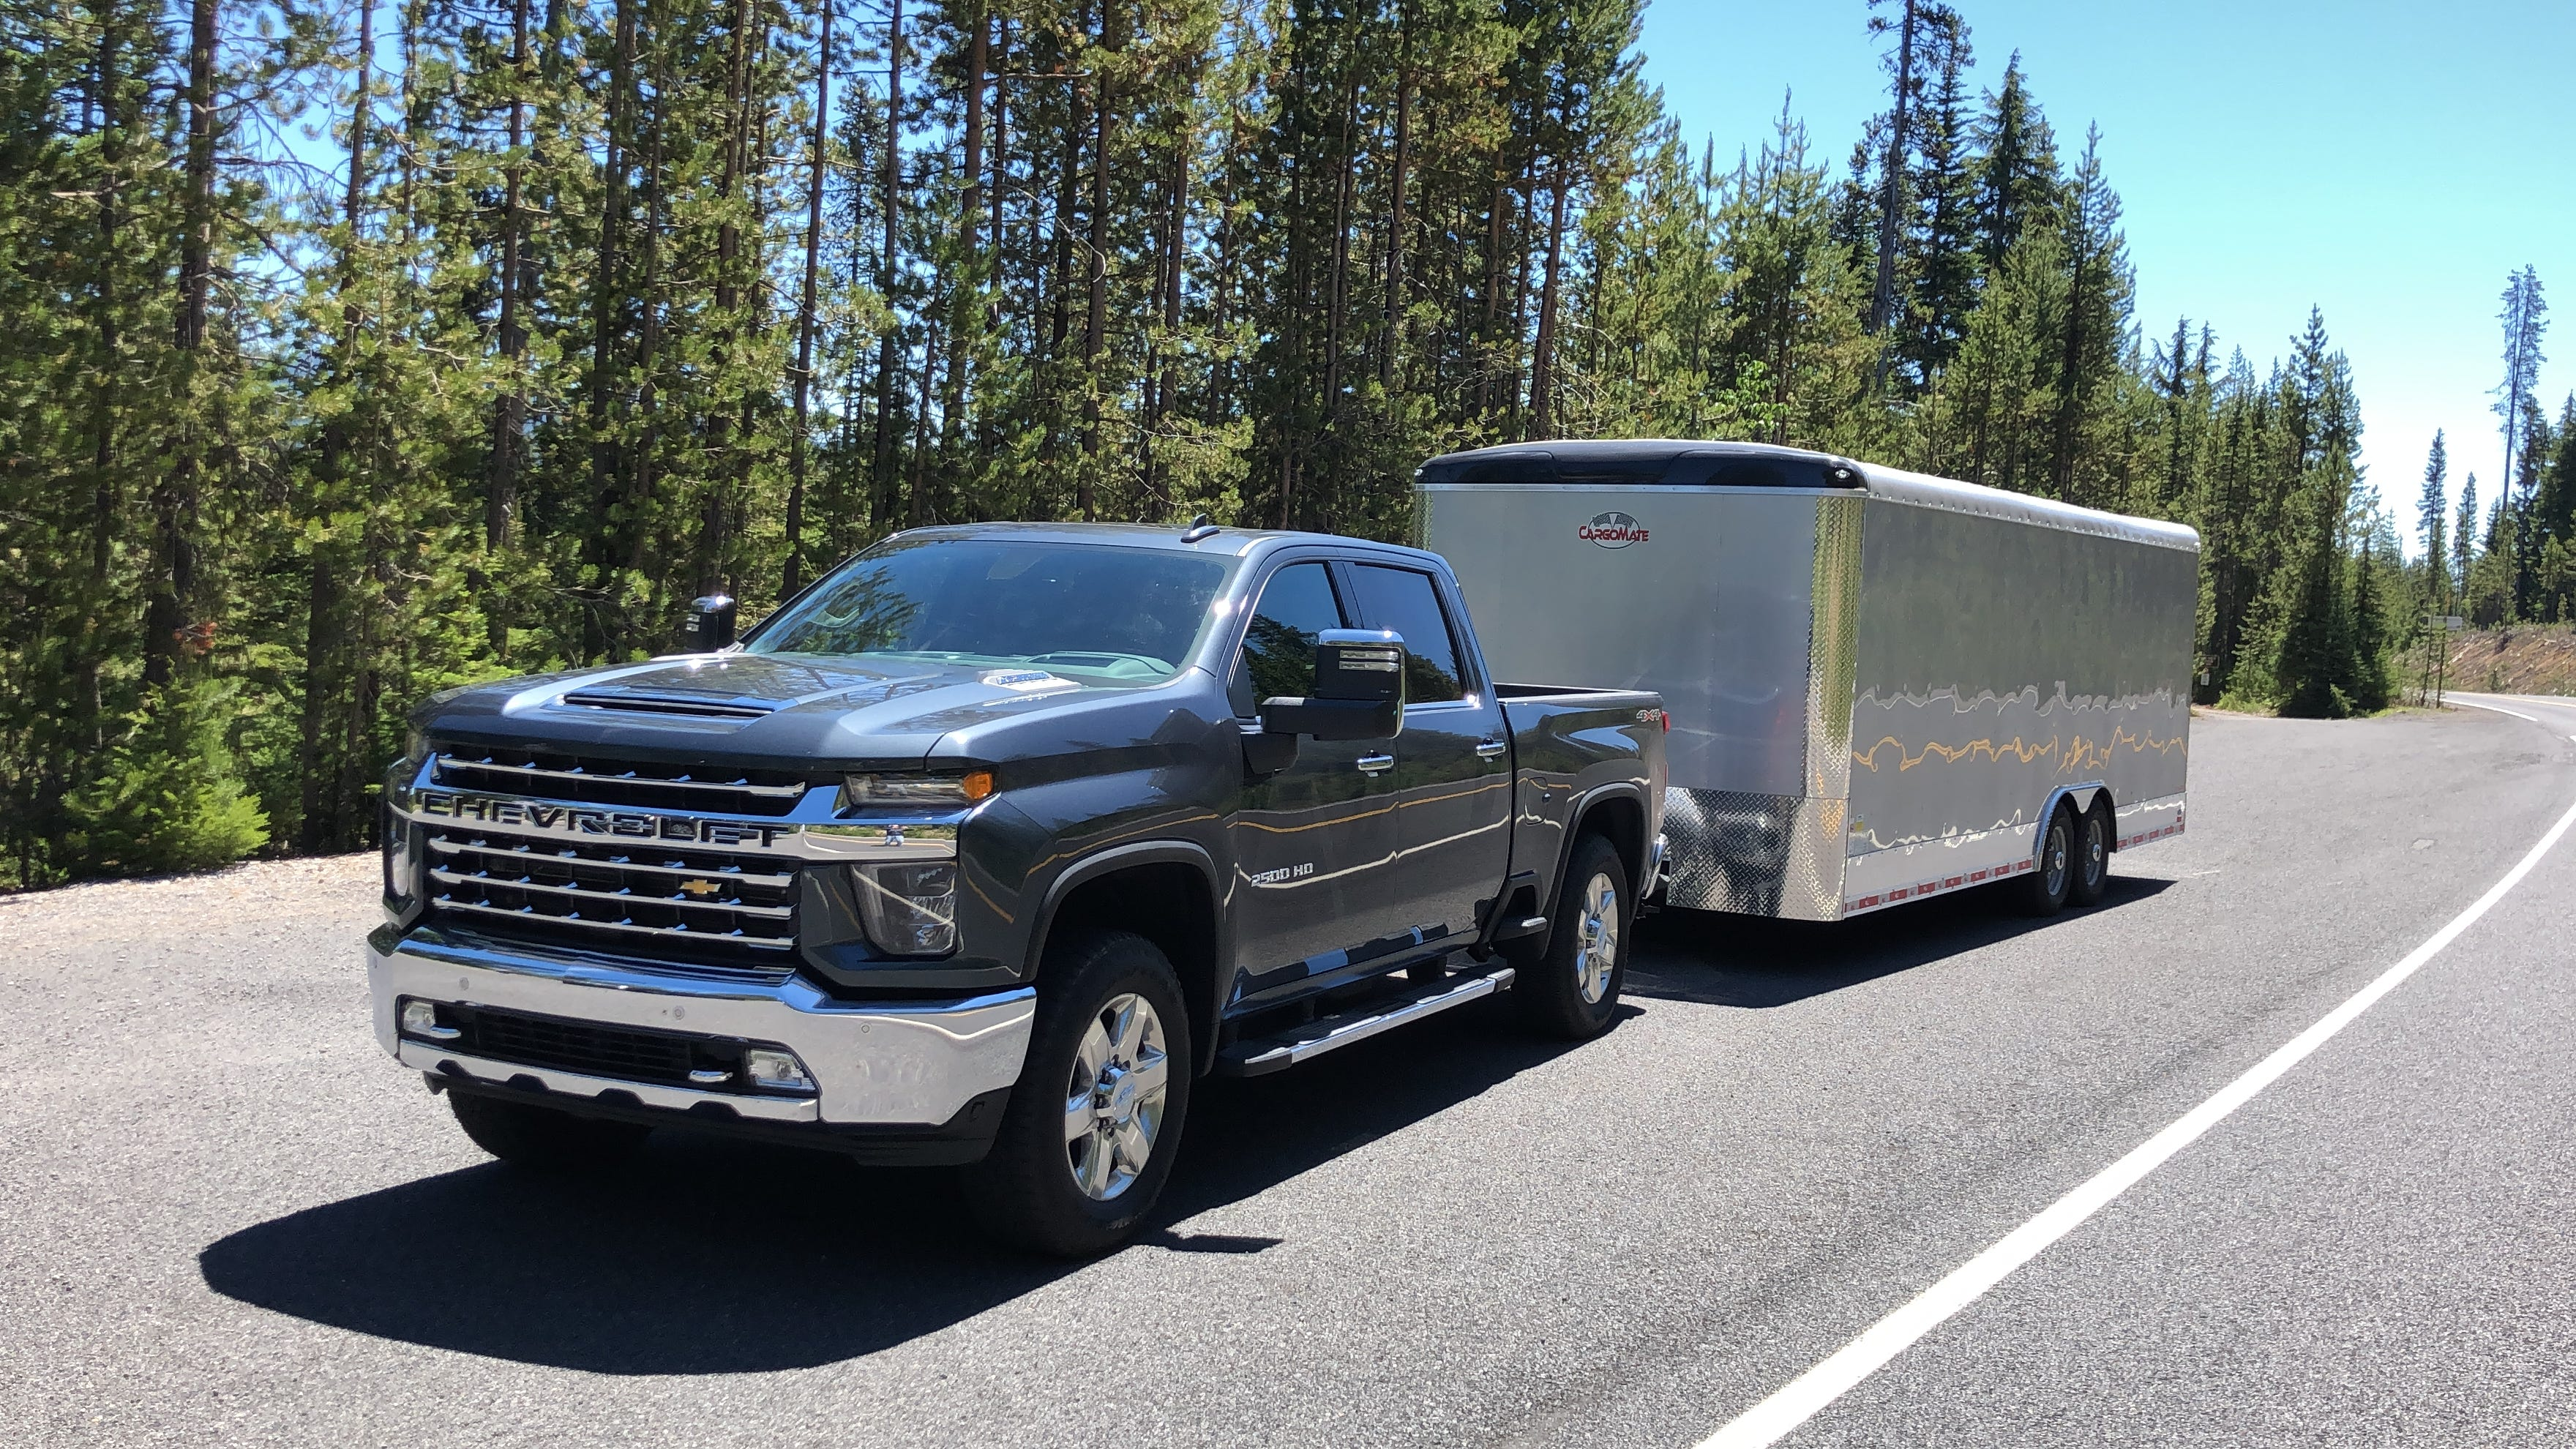 Silverado 2500 Towing Capacity >> 2020 Chevy Silverado 2500 3500 Hd Pickups Have Best Towing